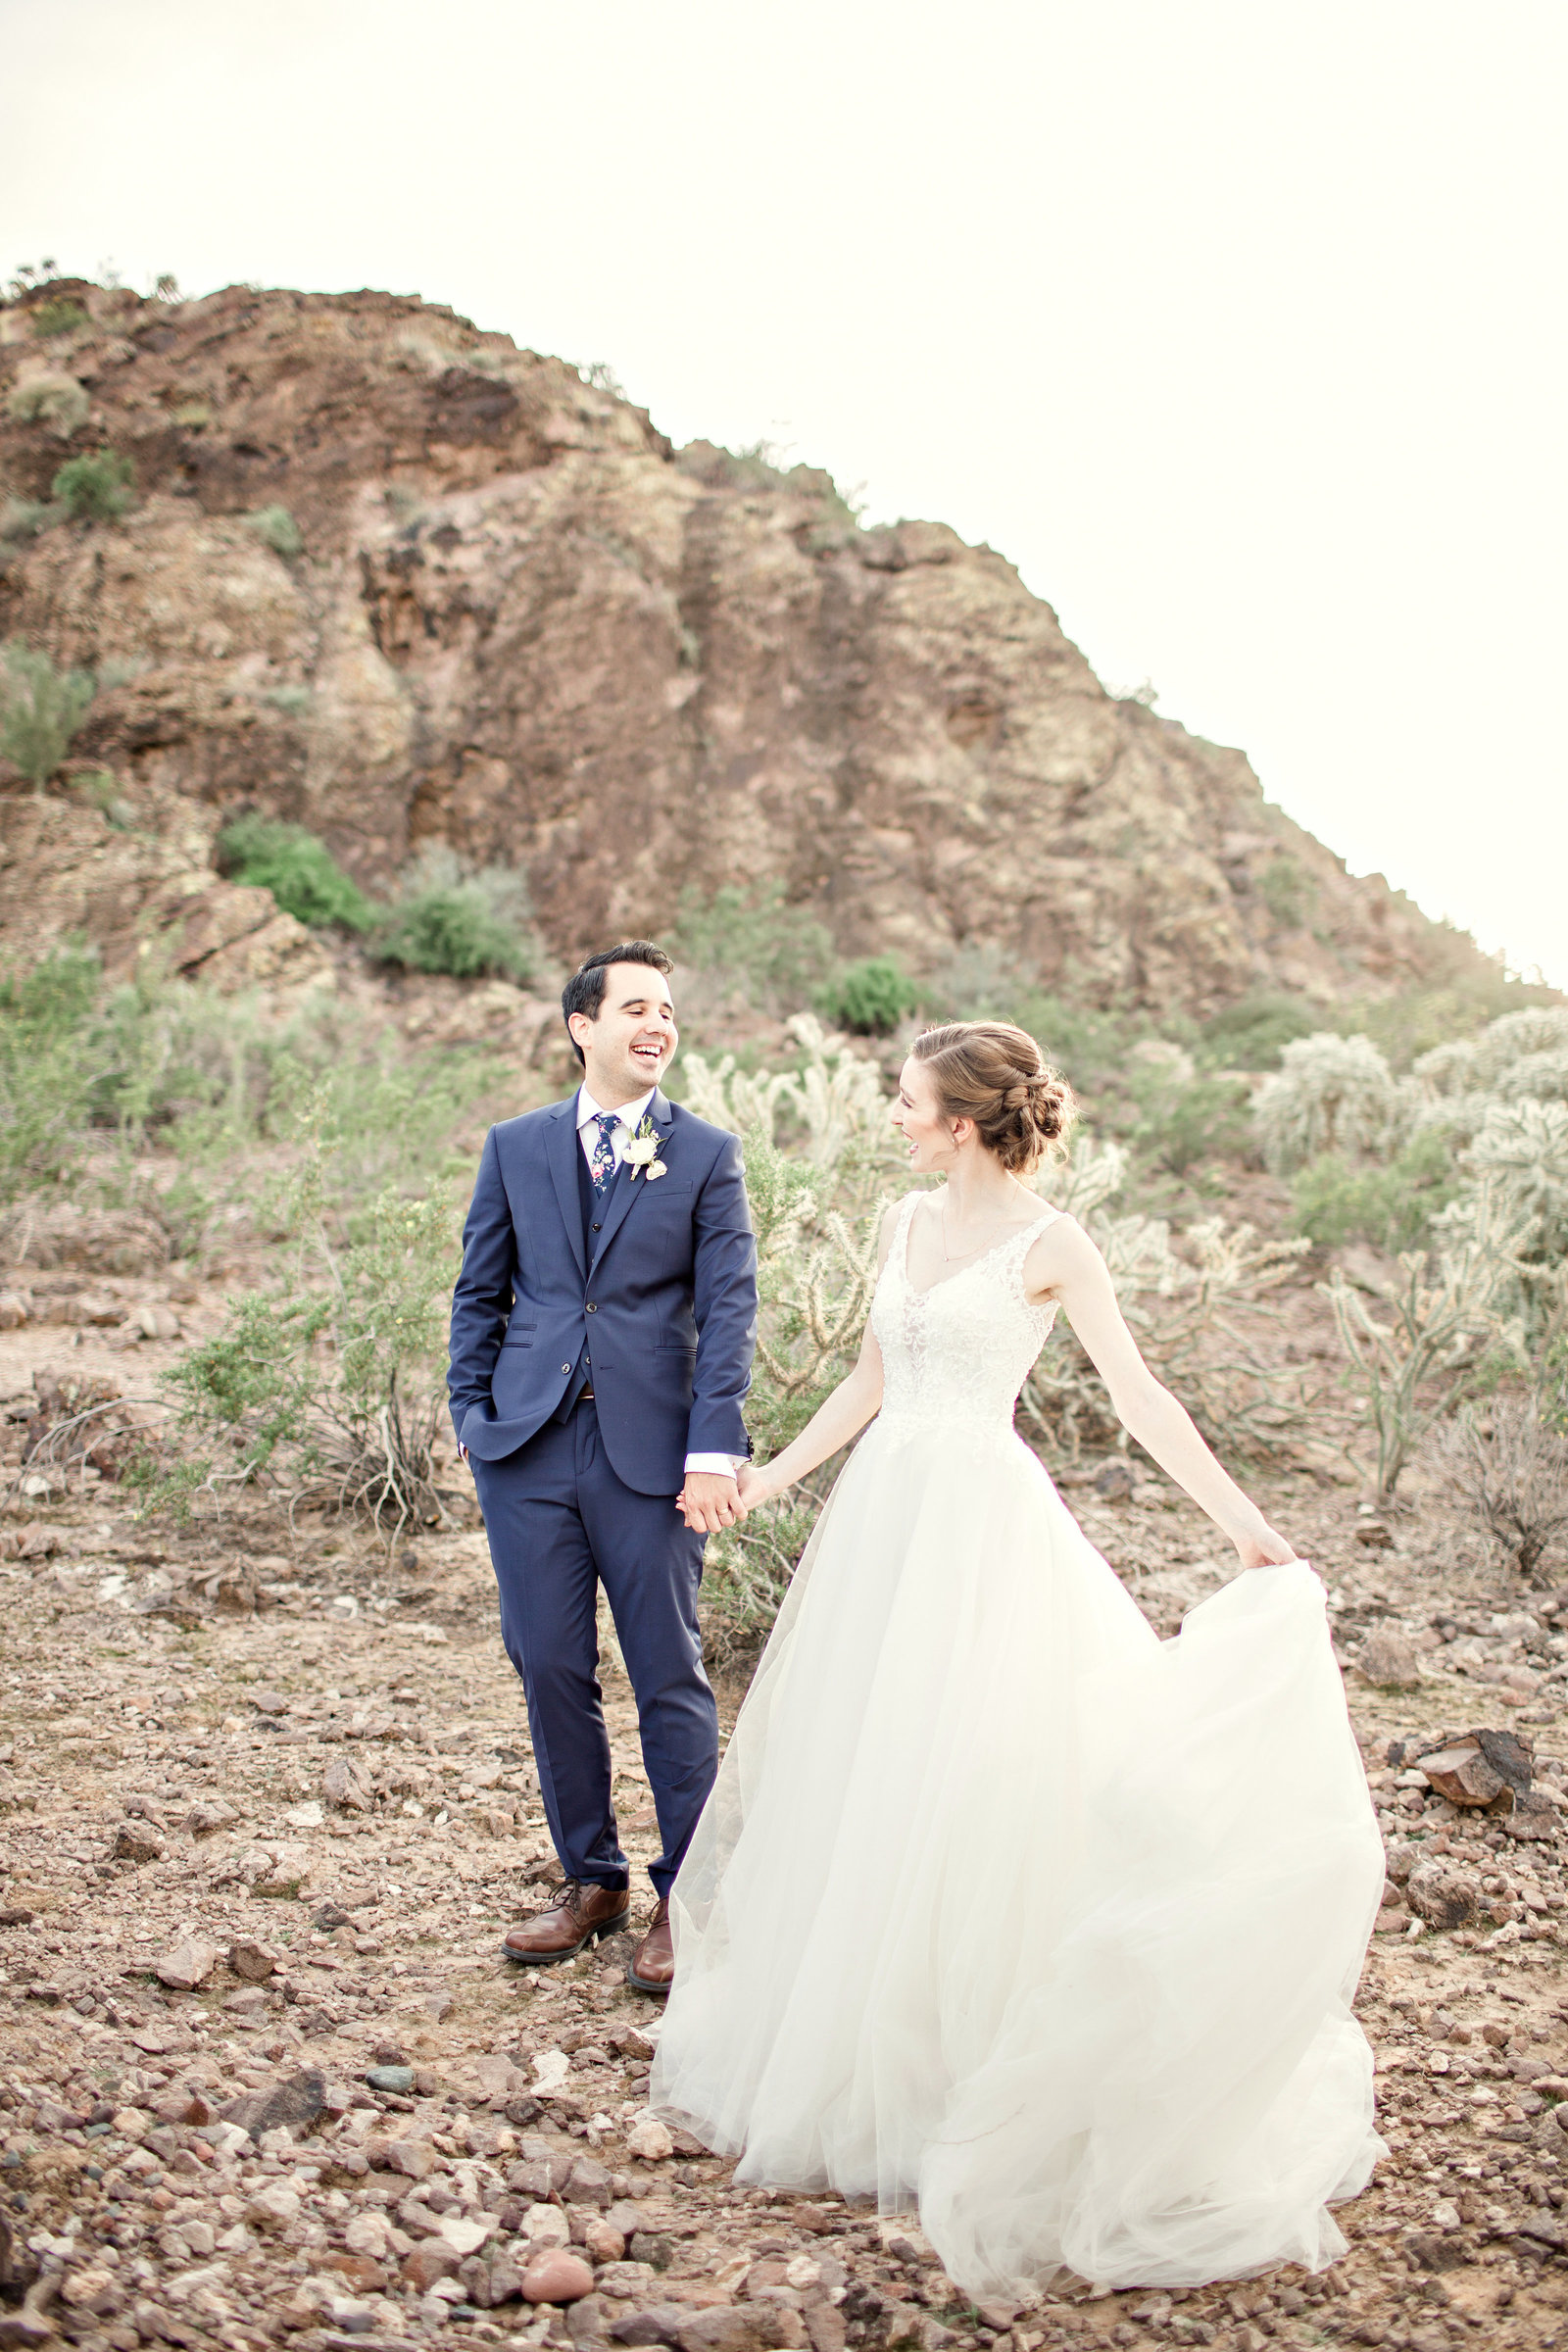 Bride and Groom looking at each other with love in their eyes in Arizona desert.